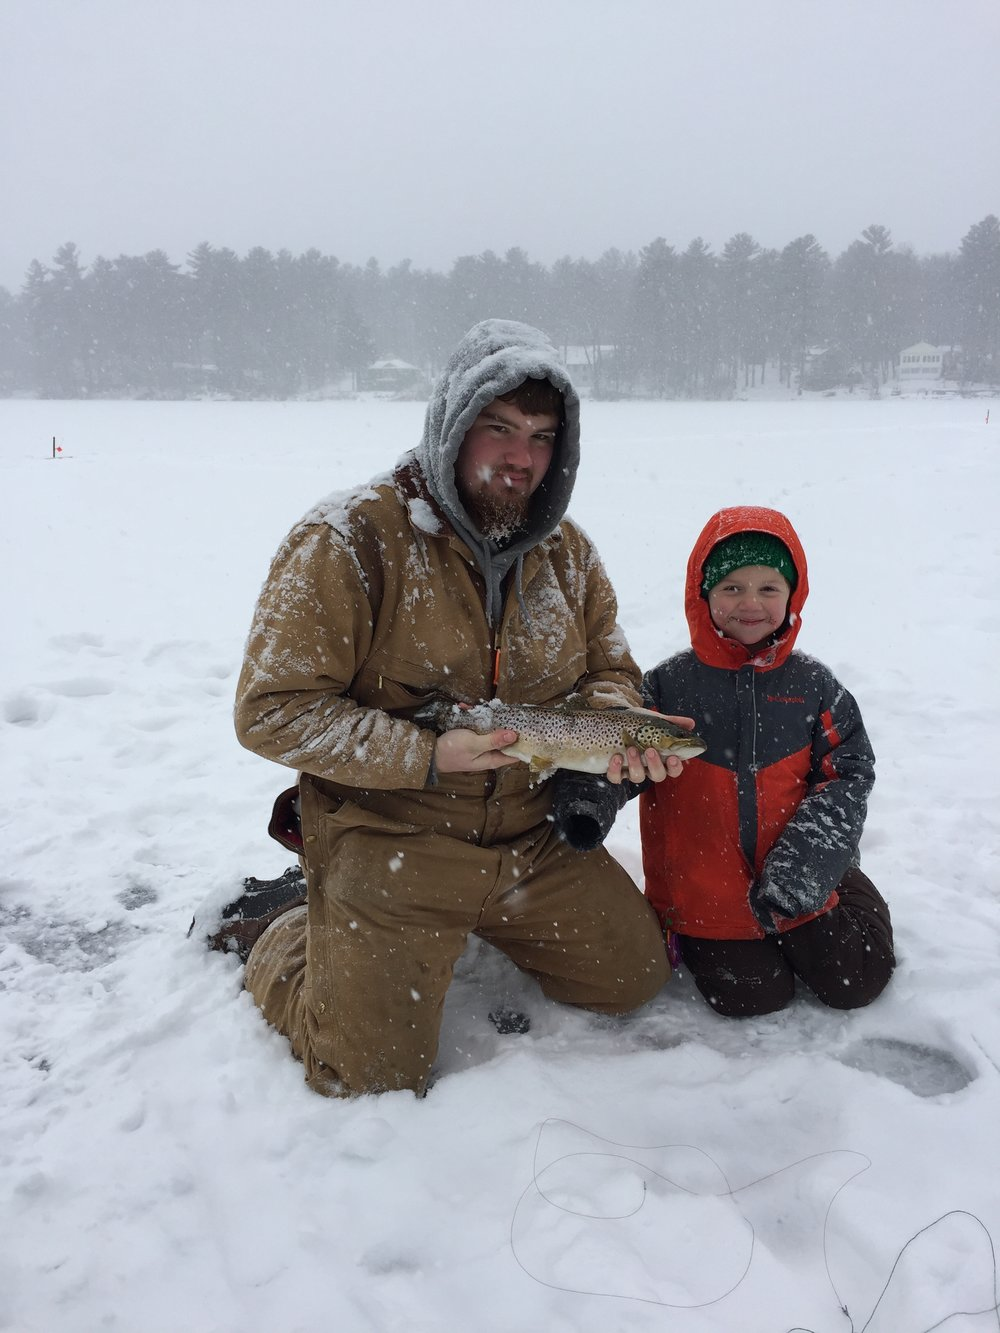 Caleb and Christopher Hill, with anonymous visitor, on Pettingill Pond, Windham, ME